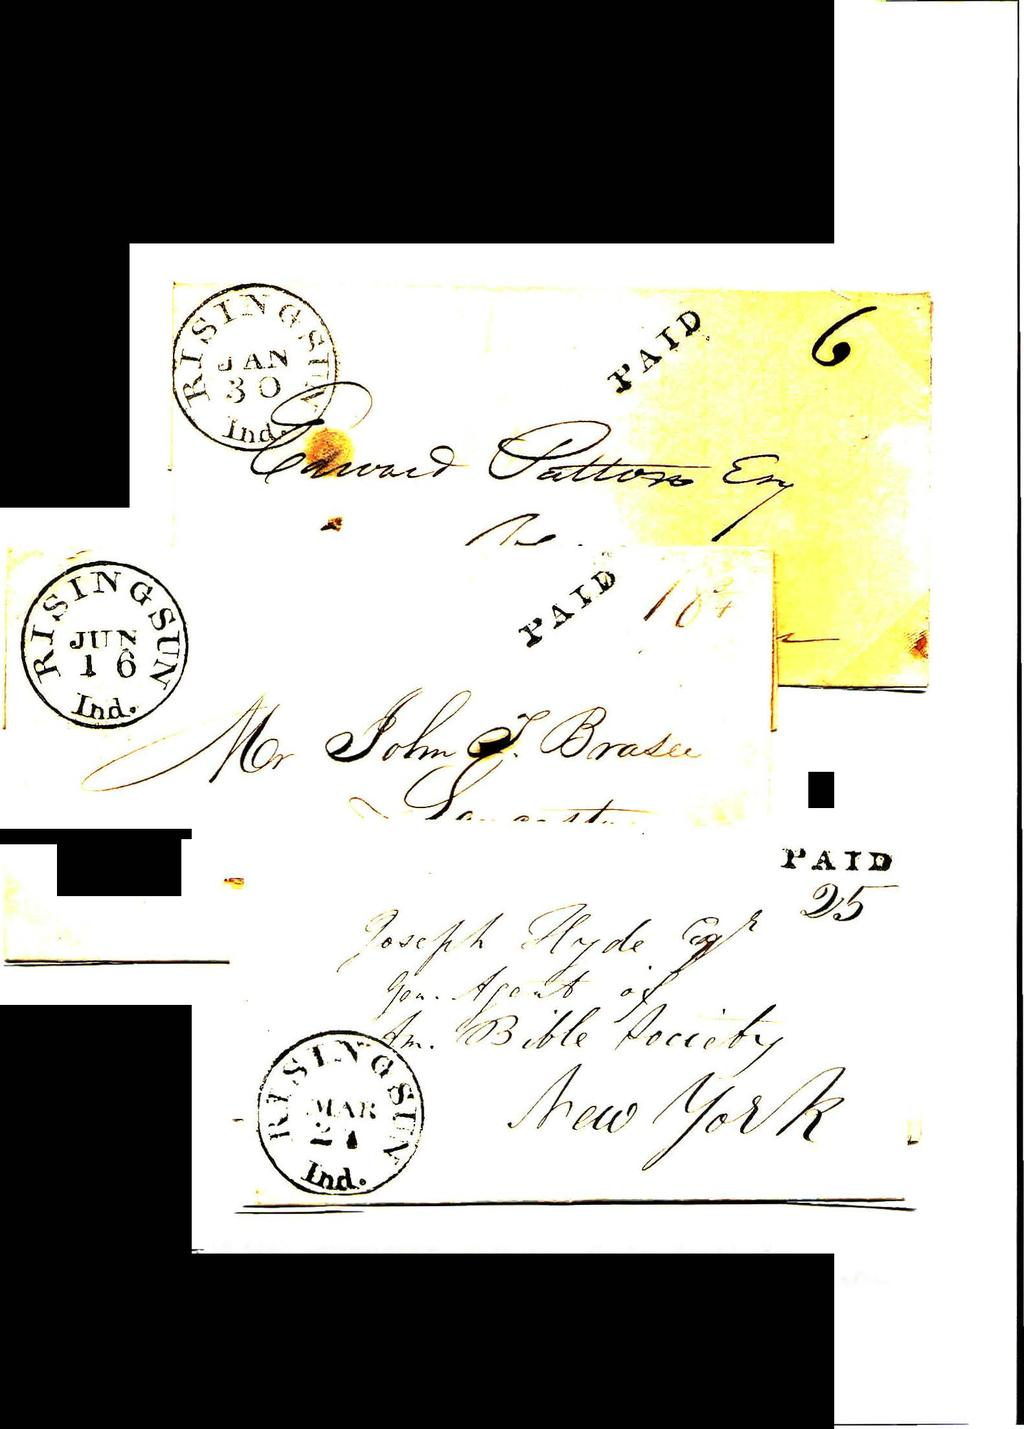 "First CDS - Paid Handstamp i jan:.12:!_ 30. 1838. Six cent rare fo:r one sb.ee:: eling less than 30 miles.. ""--..::::= 6. 1838. and 3, cen."